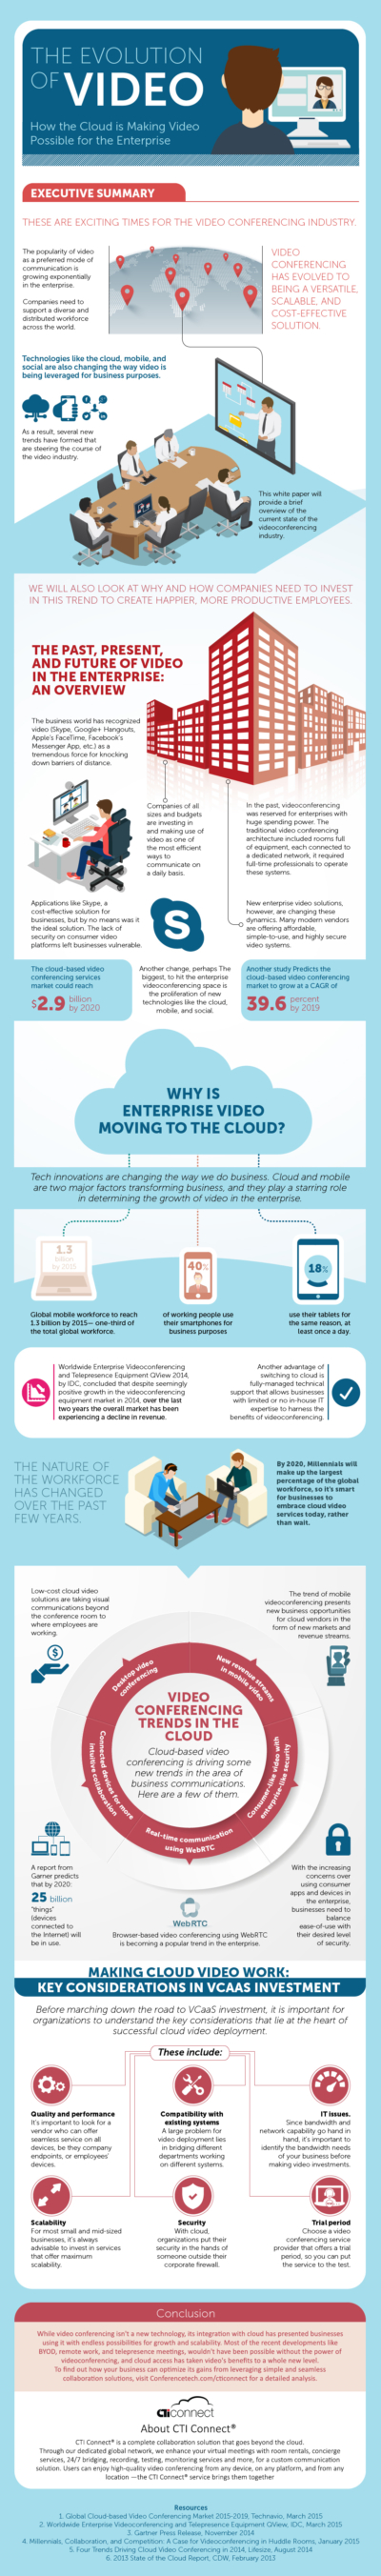 CTI connect evolution of video infographic